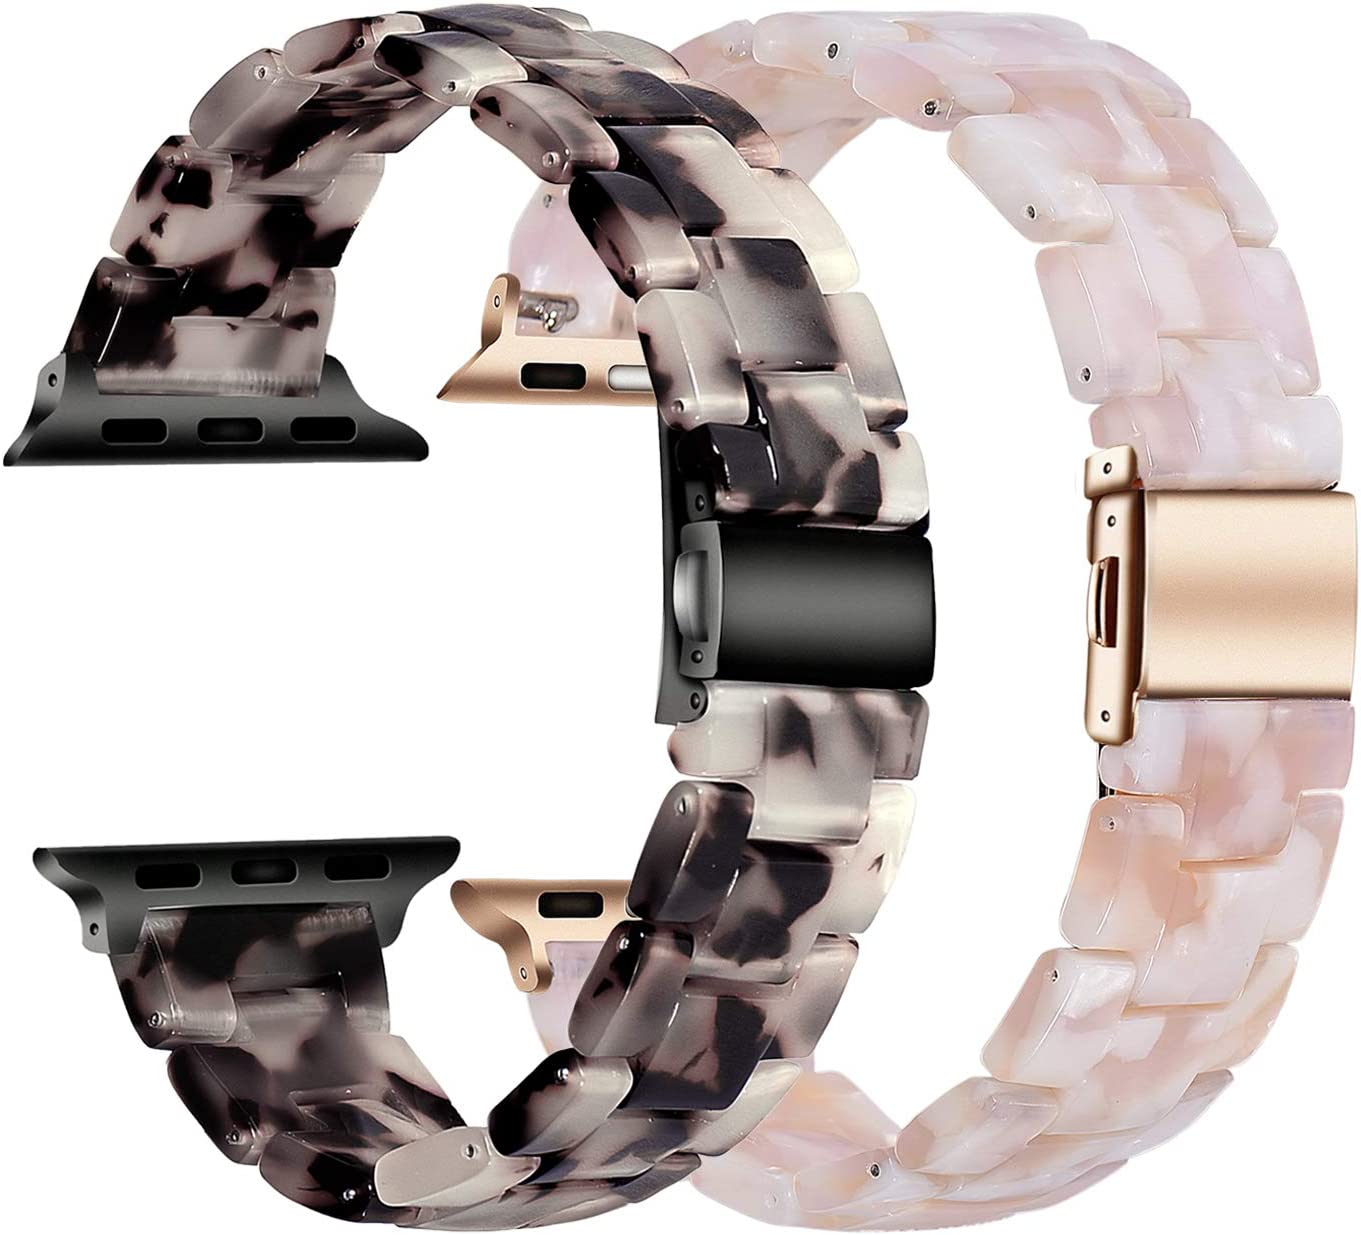 Wongeto Resin Watchband Compatible with Apple Watch Band 38mm 40mm Series 5/4/3/2/1 Women Men iWatch Replacement Wristband Strap - Grey+Flower Pink